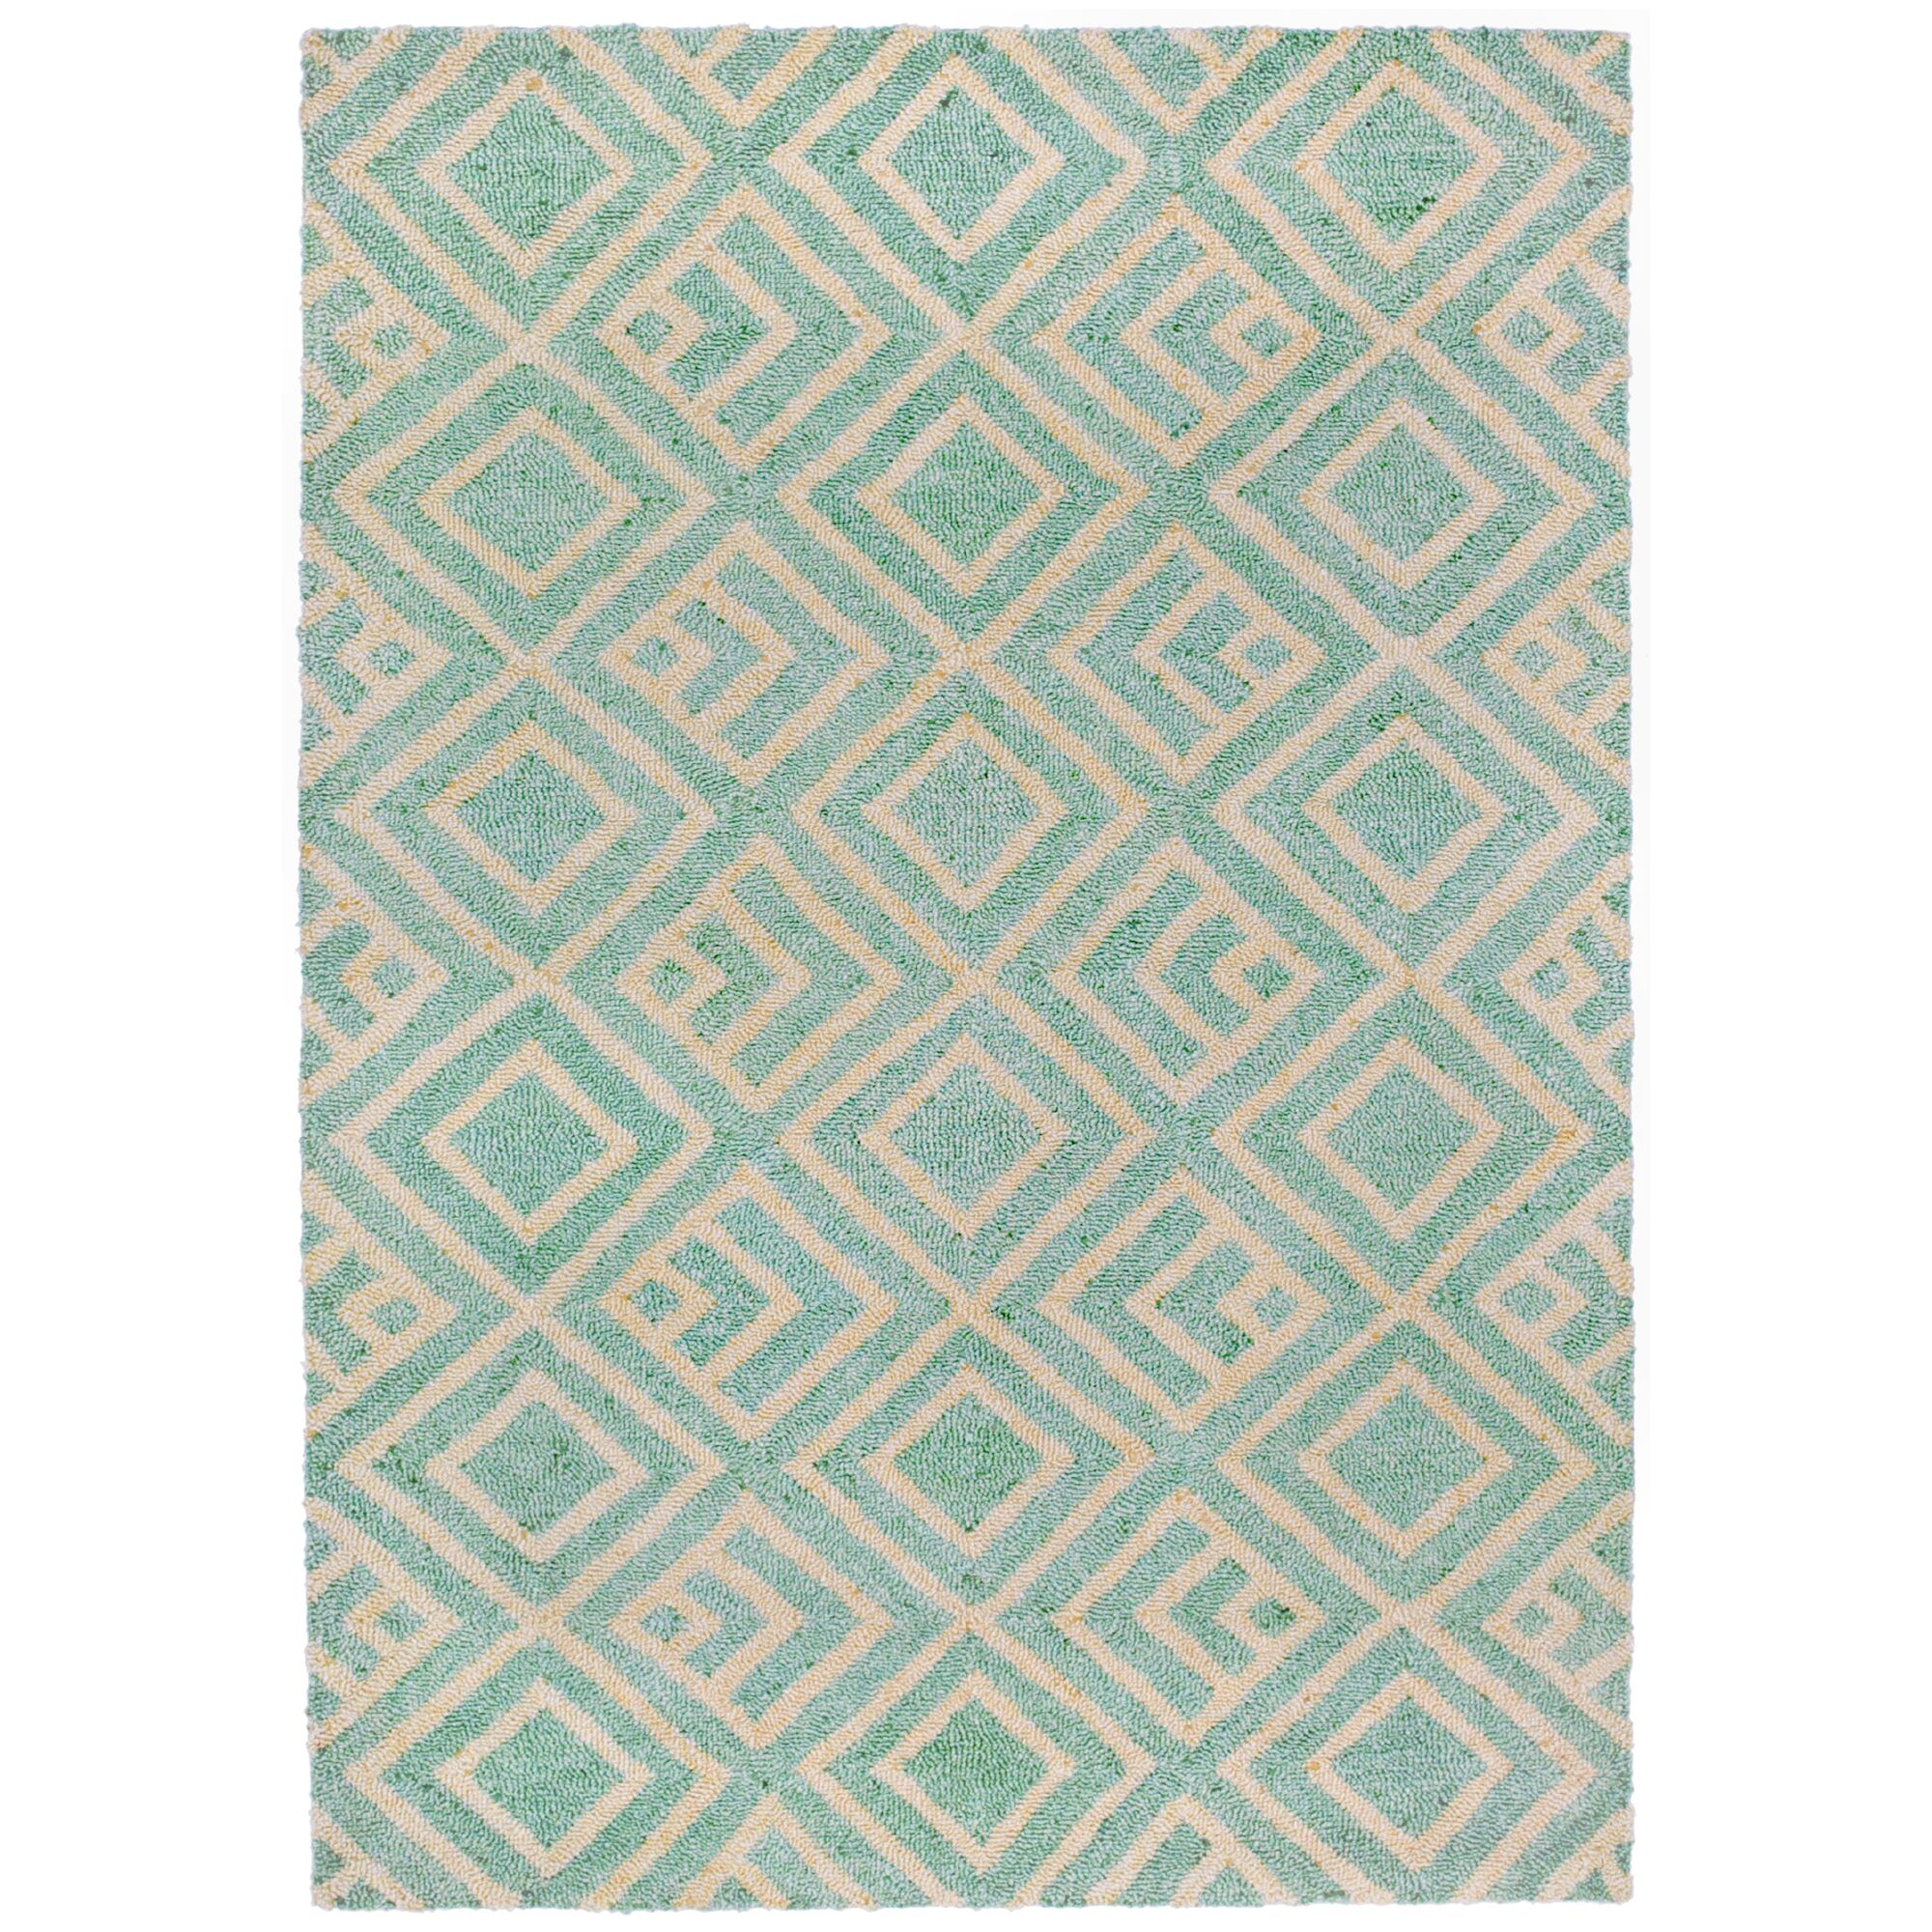 Chamness Hand-Tufted Aqua Indoor/Outdoor Area Rug Rug Size: 8'3